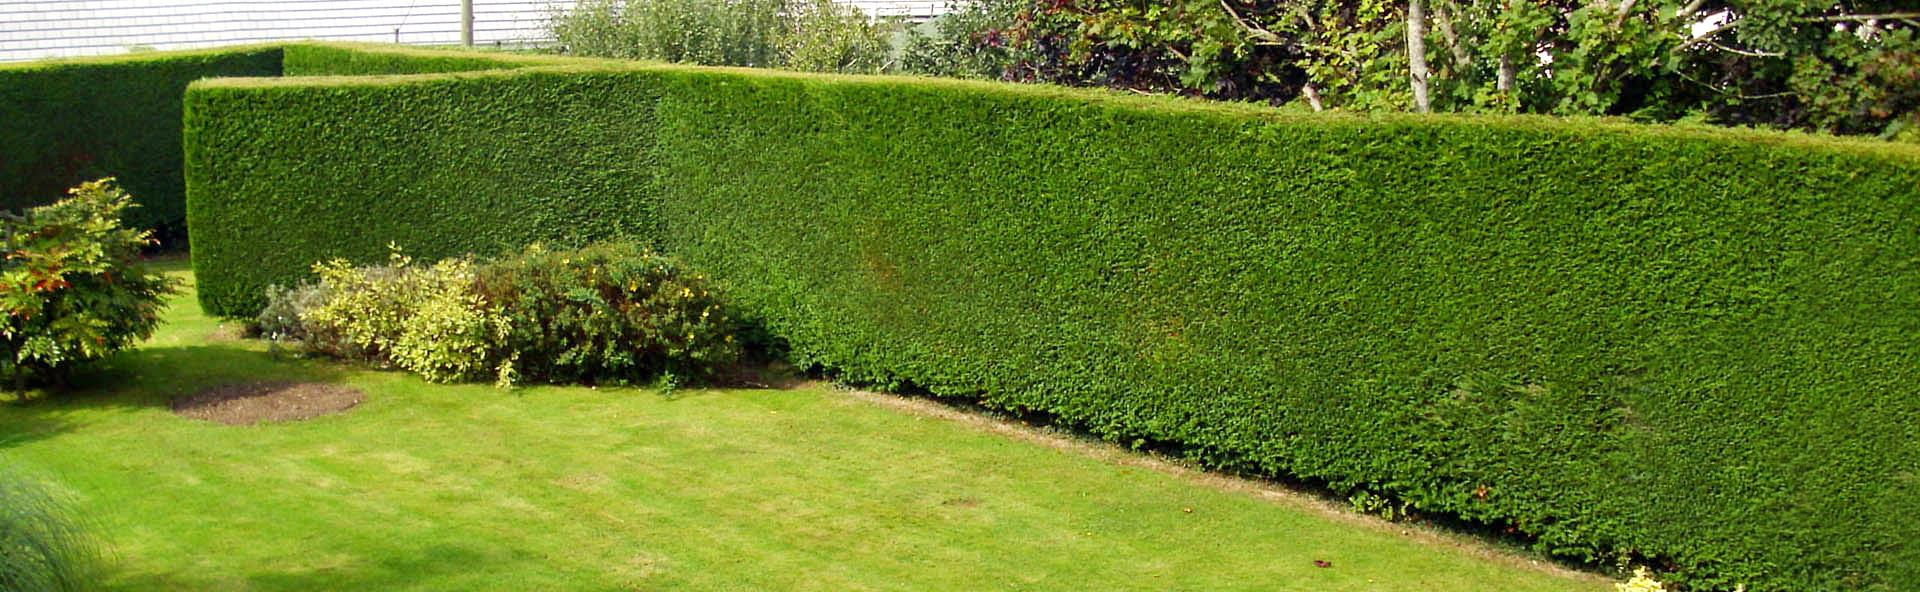 delta-hedge-trimming-service